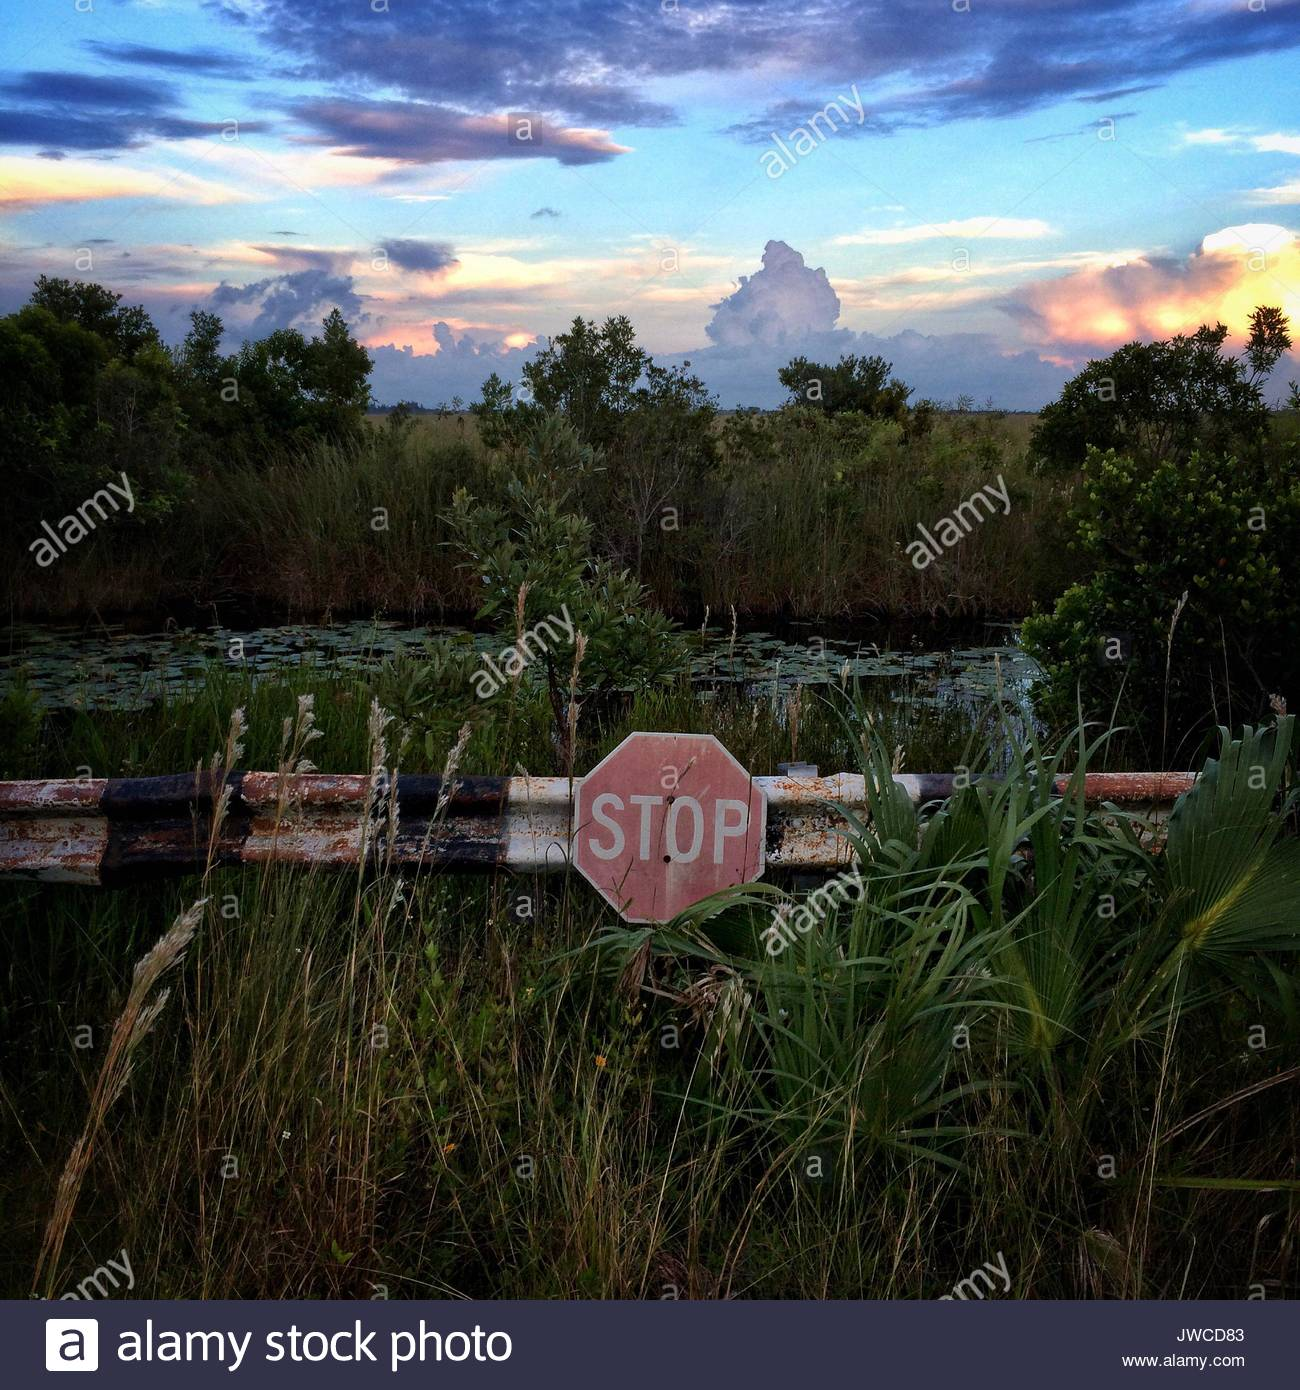 A stop sign on a back road in the Chekika area of Florida's Everglades National Park. - Stock Image